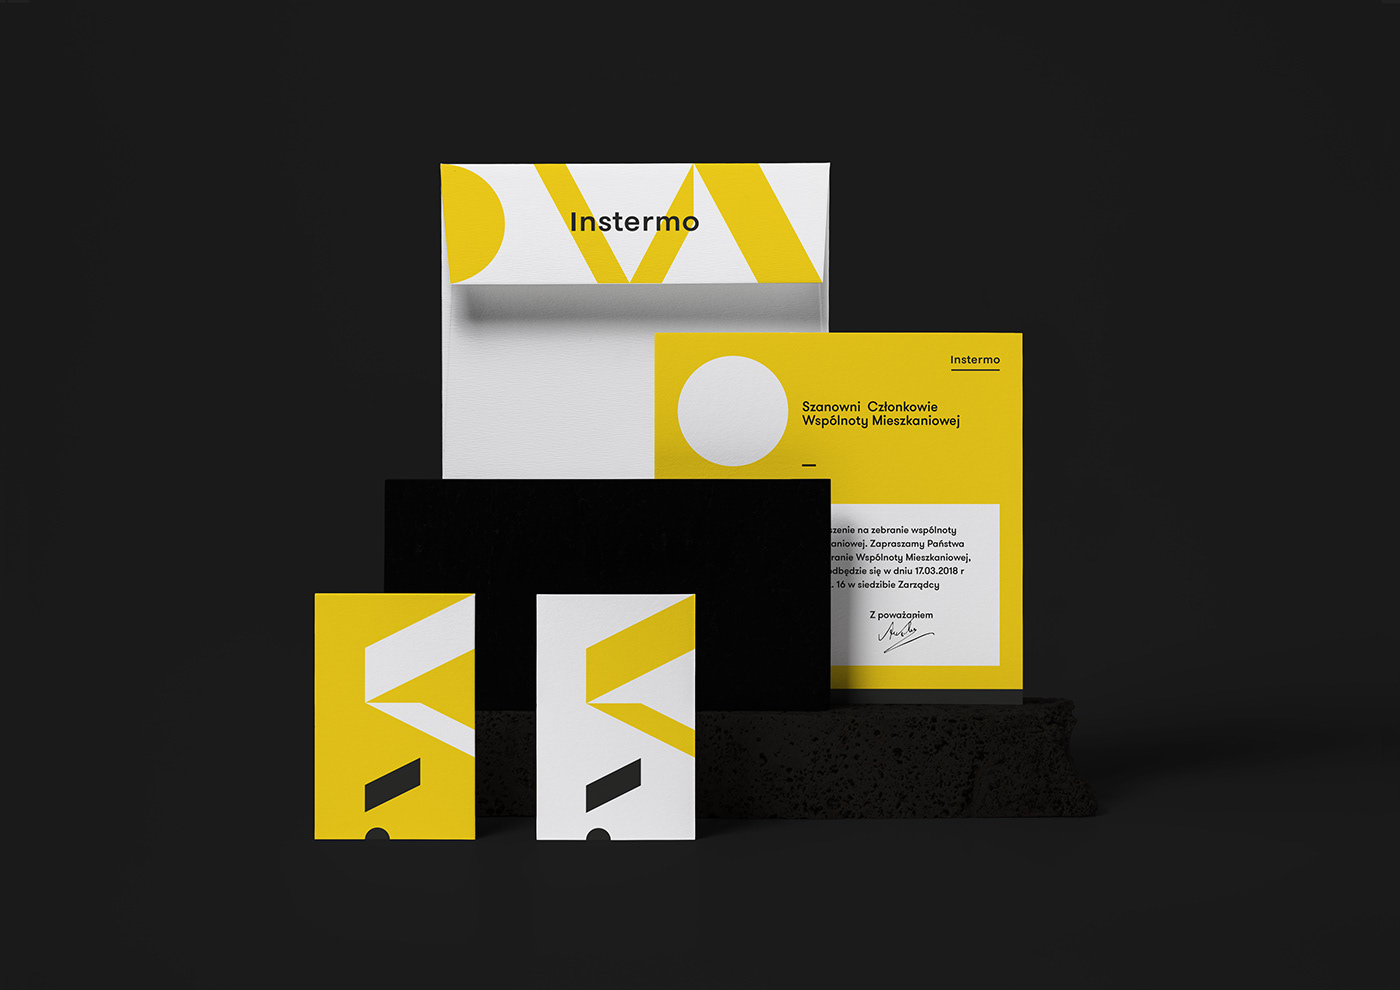 brand,logo,redesign,rebranding,architecture,cover,Layout,user interface,Website,administration